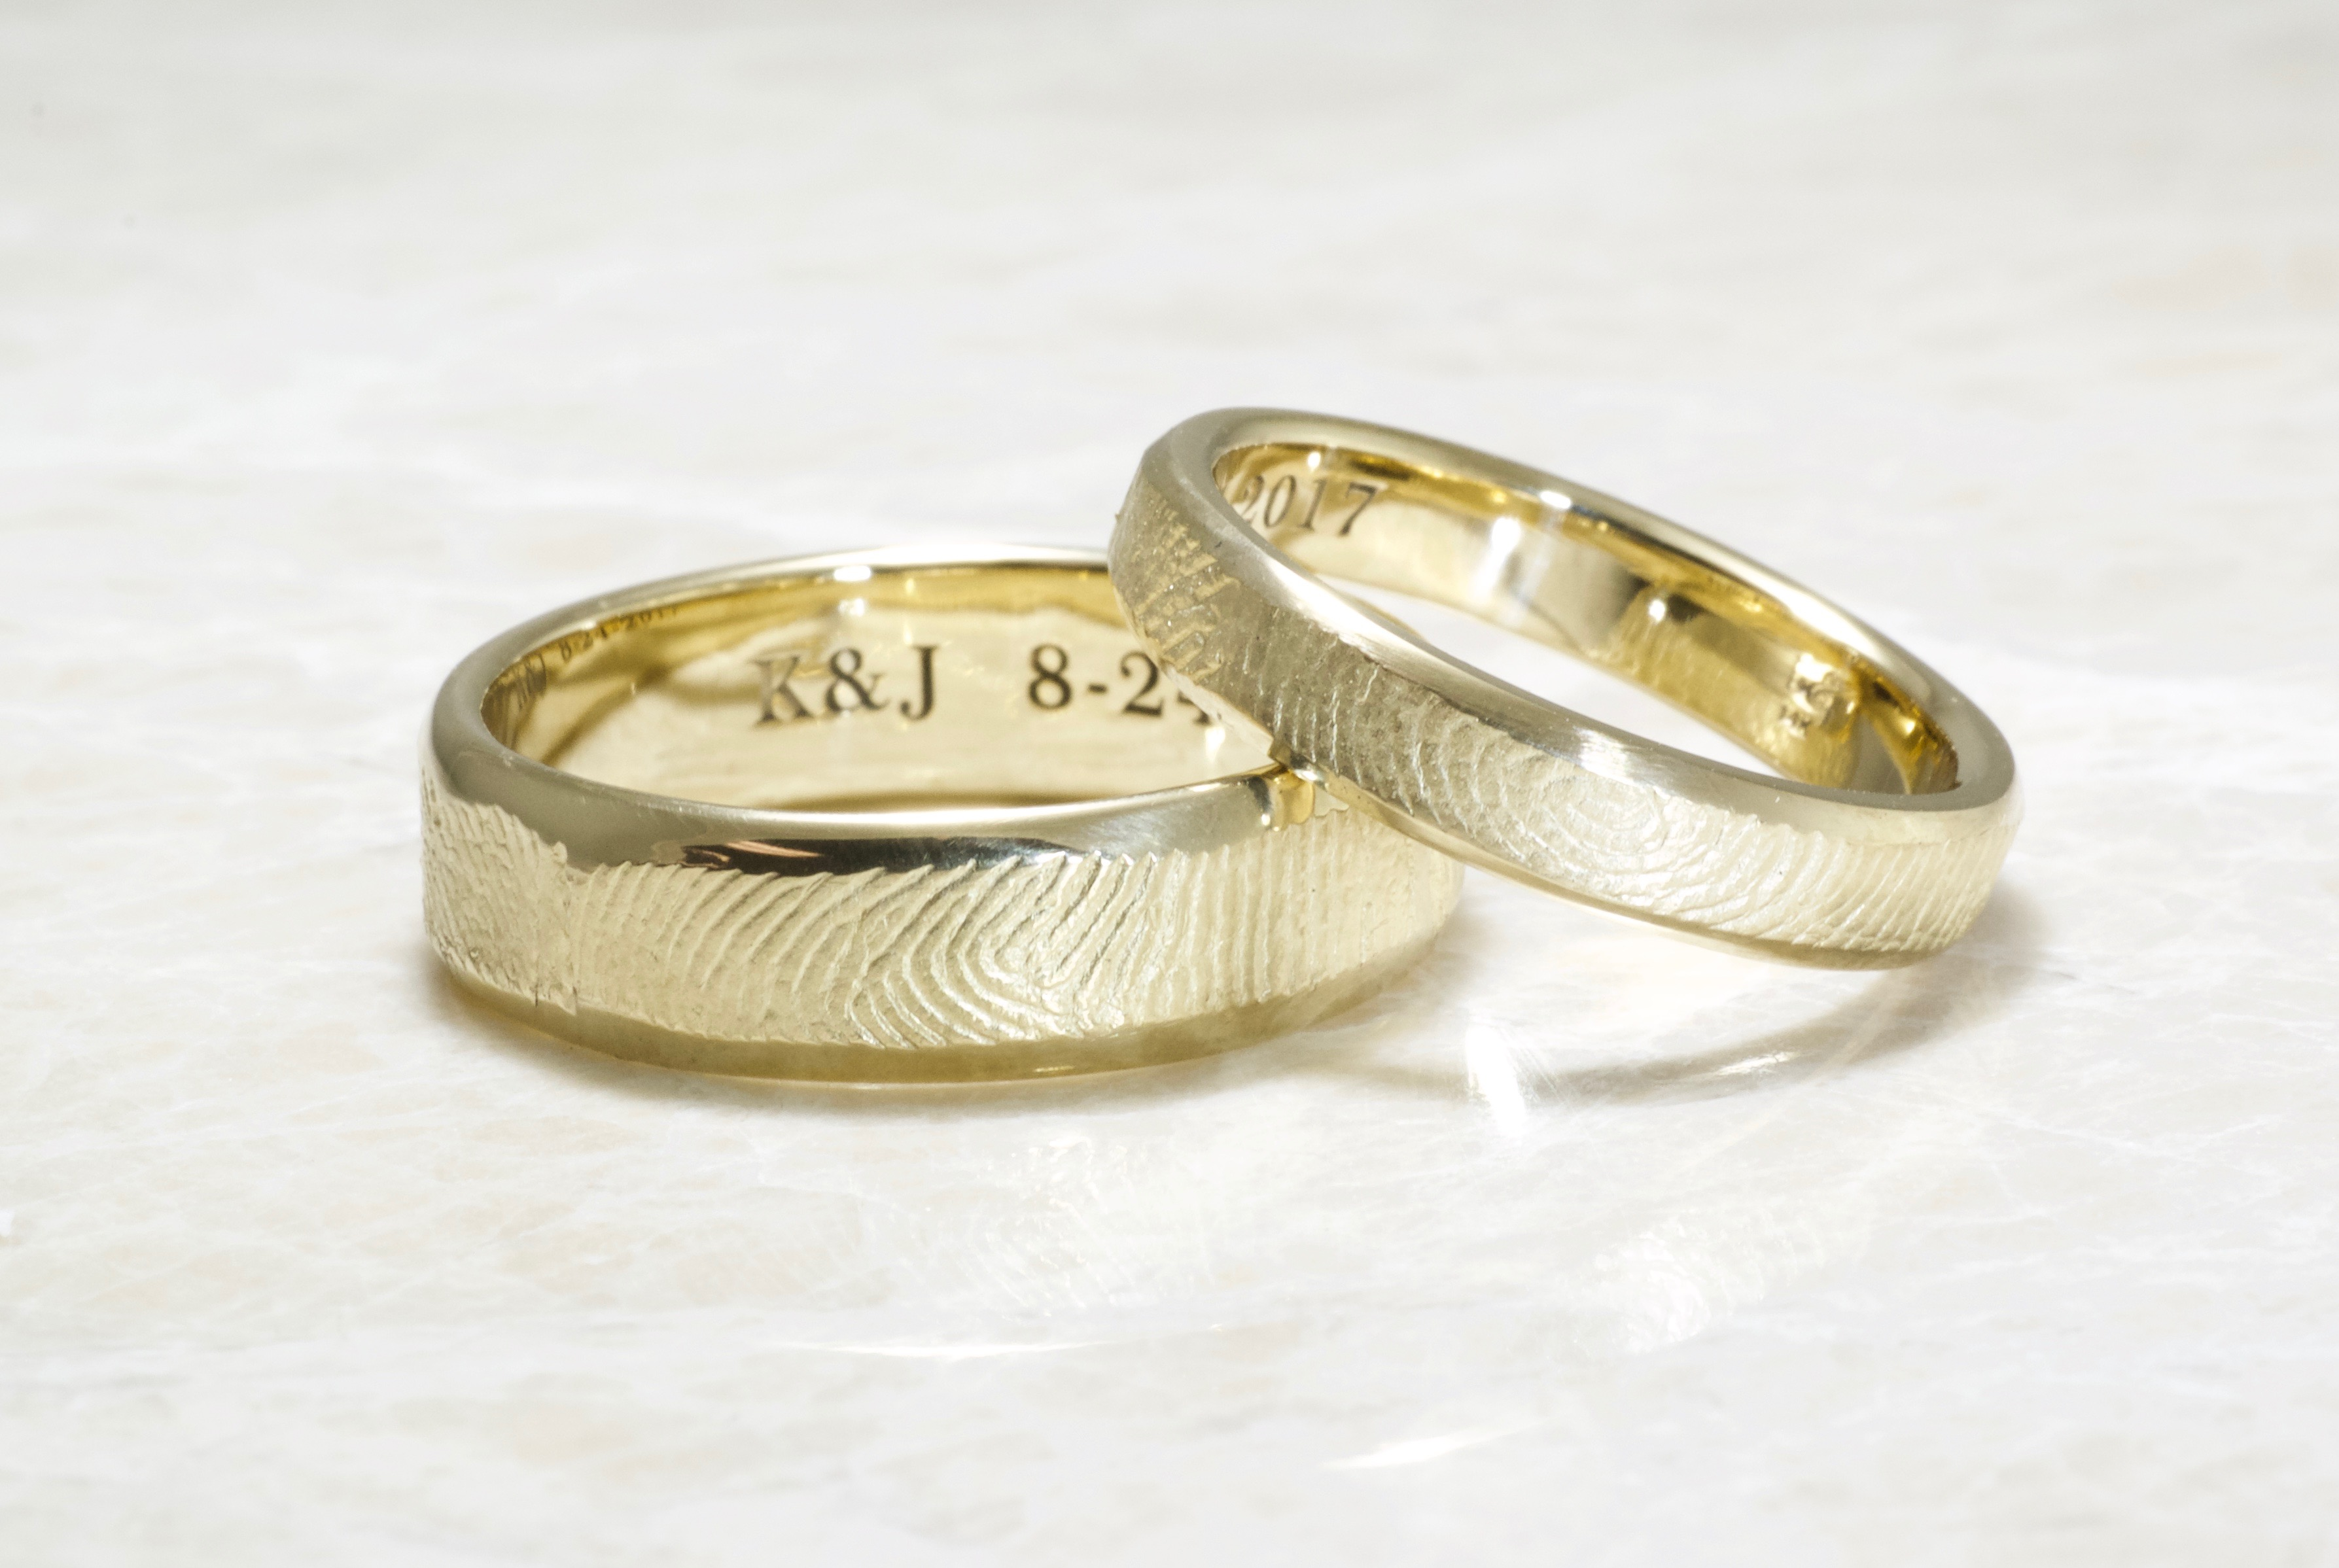 14k gold bevel rings with exterior wrapped fingerprint by Brent&Jess